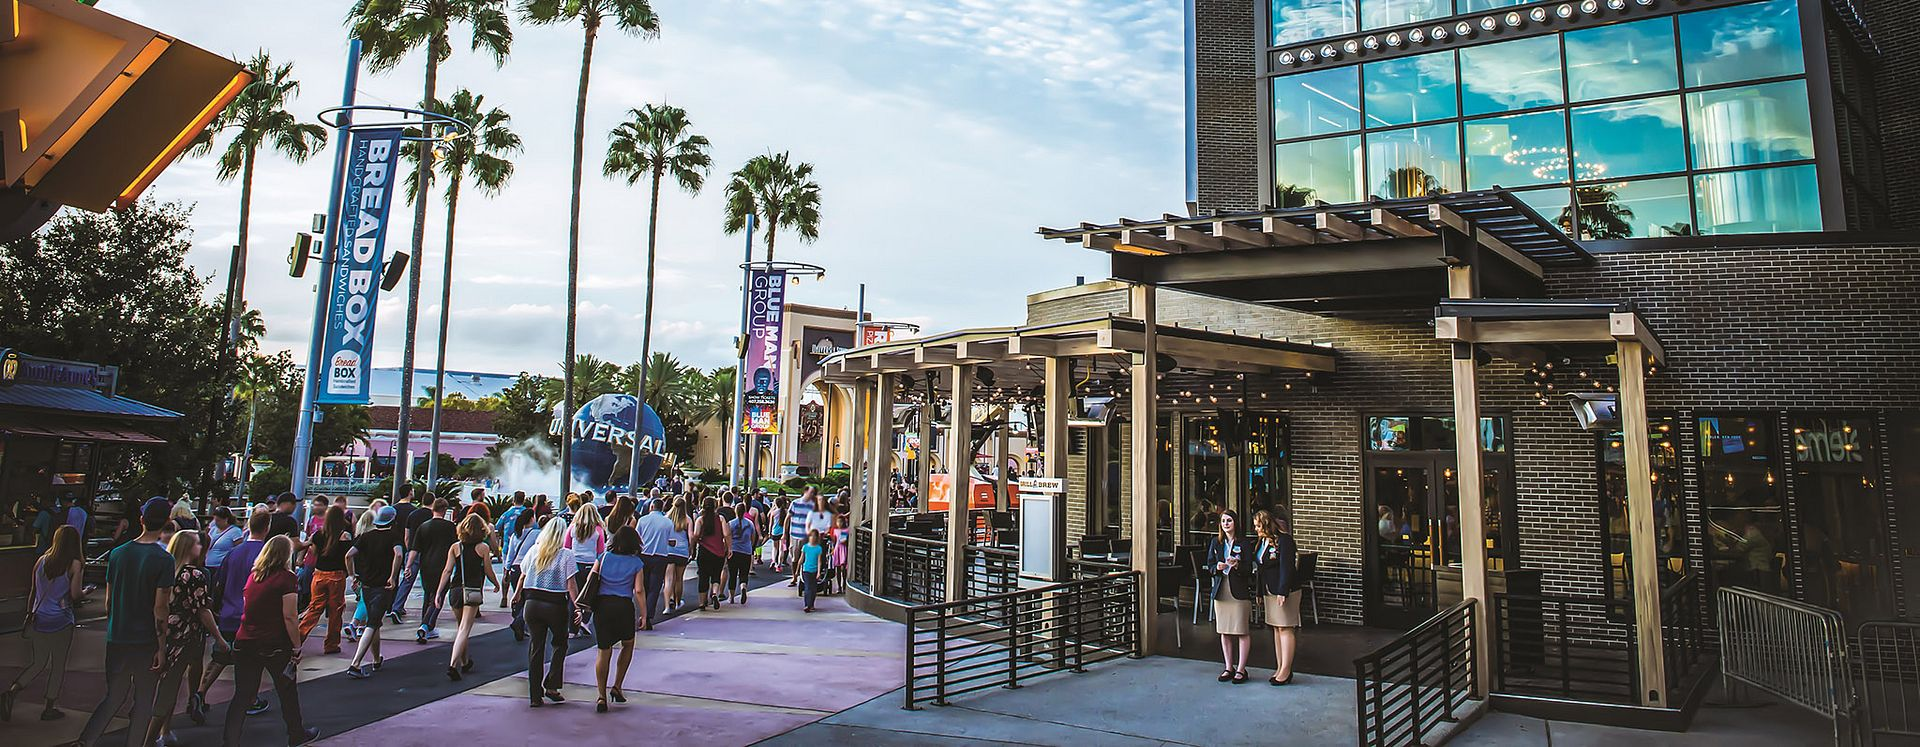 Crowds of people at Universal CityWalk walking by the NBC Sports Grill, with the Universal globe and the entrance to Universal Studios Florida in the background.